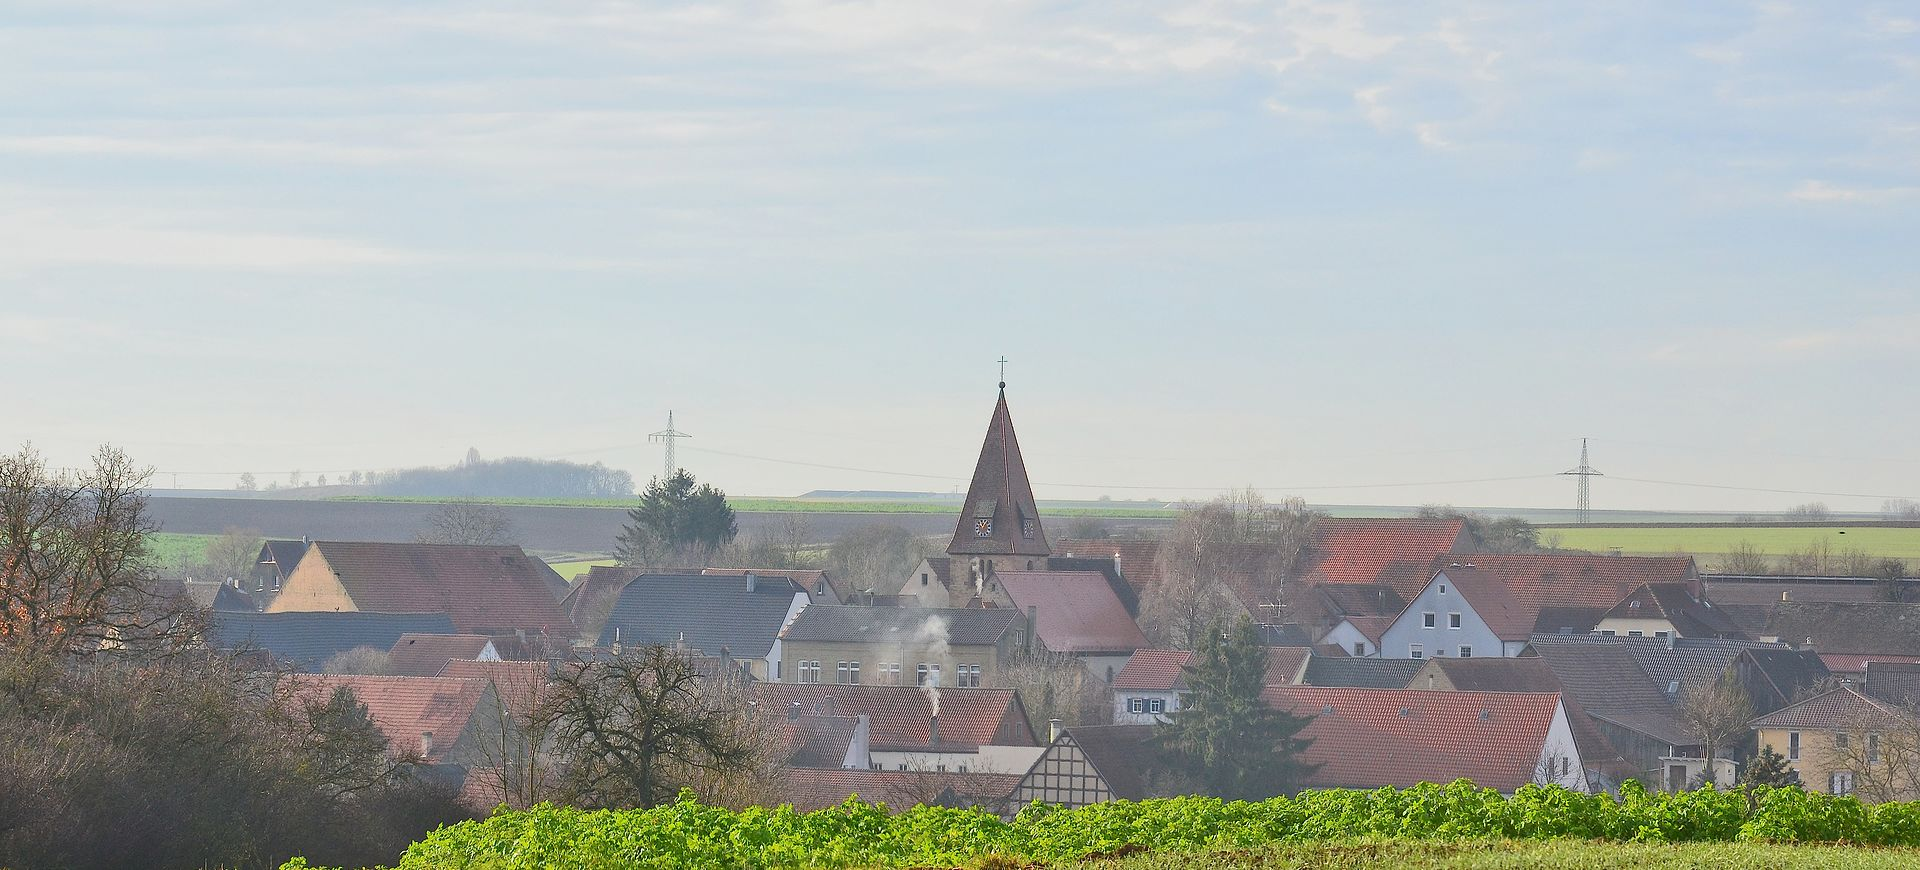 Sliderbild: Martinsheim